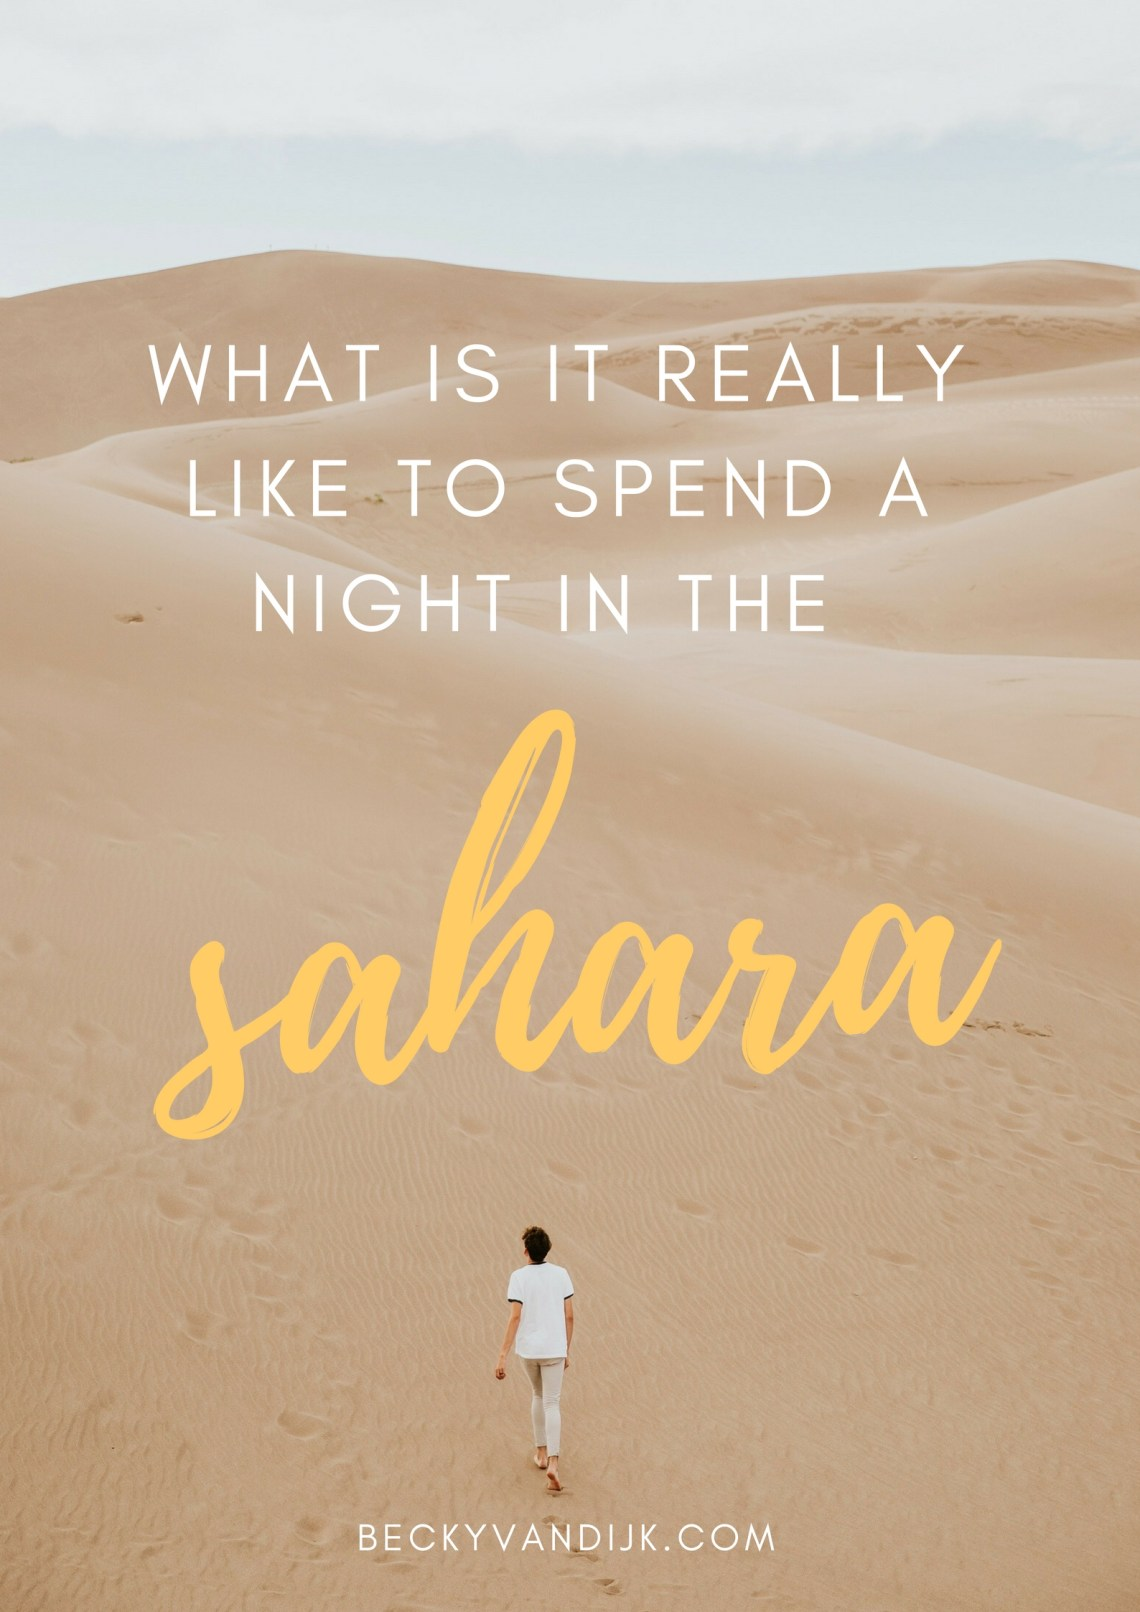 WHAT IS IT REALLY LIKE TO SPEND THE NIGHT IN THE SAHARA